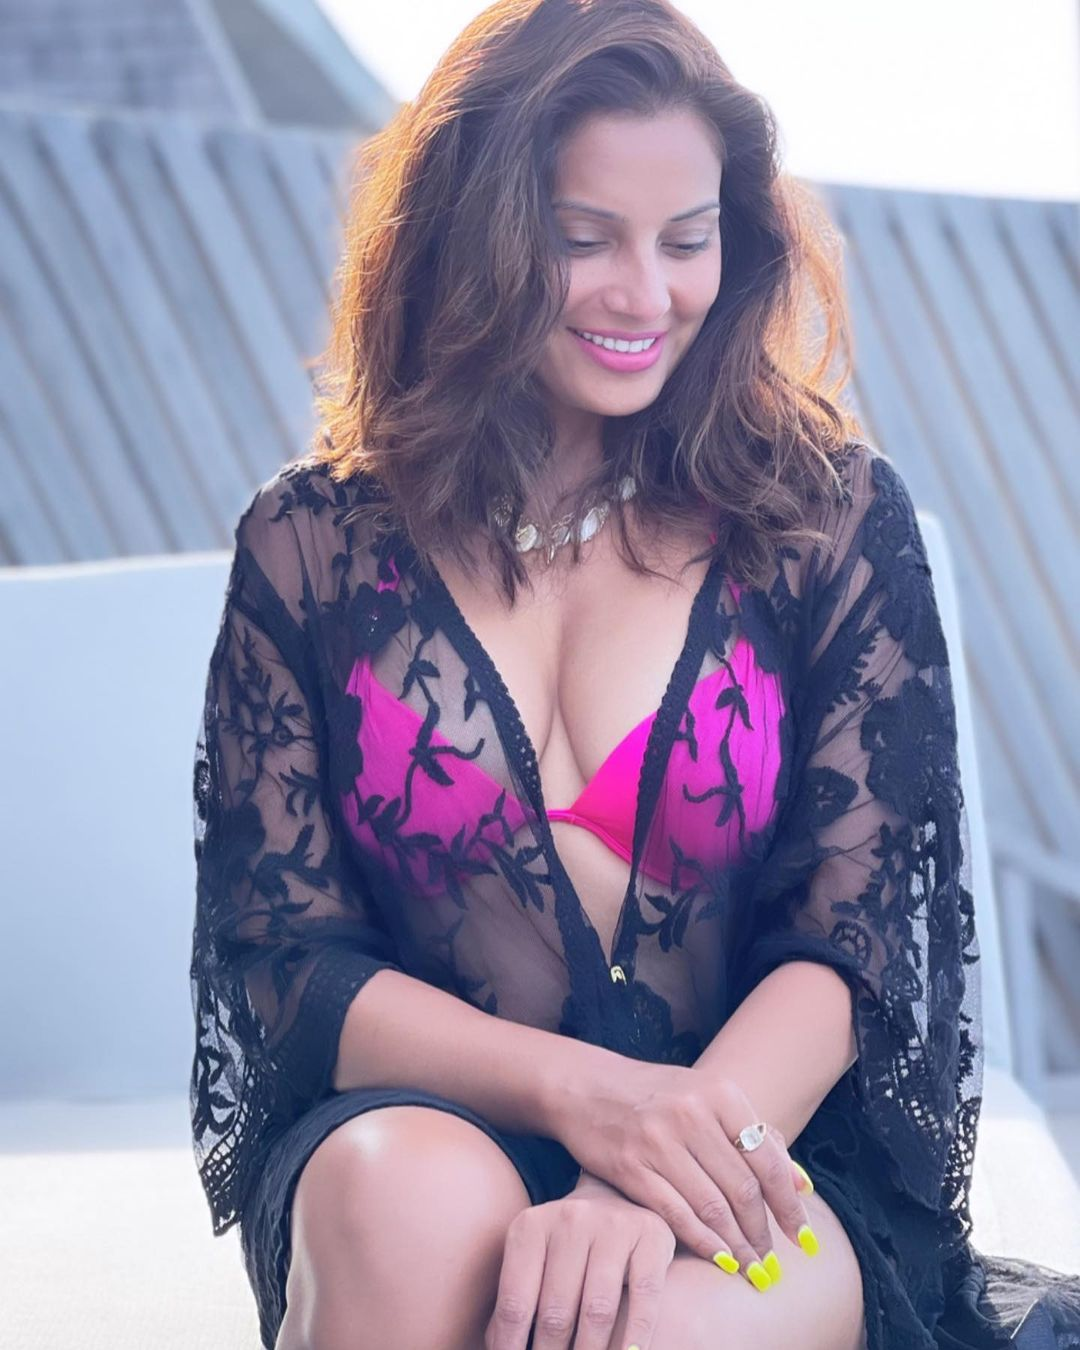 Bold pictures of Bipasha Basu will make you sleepy, fans will be heartened by seeing Funny Jokes